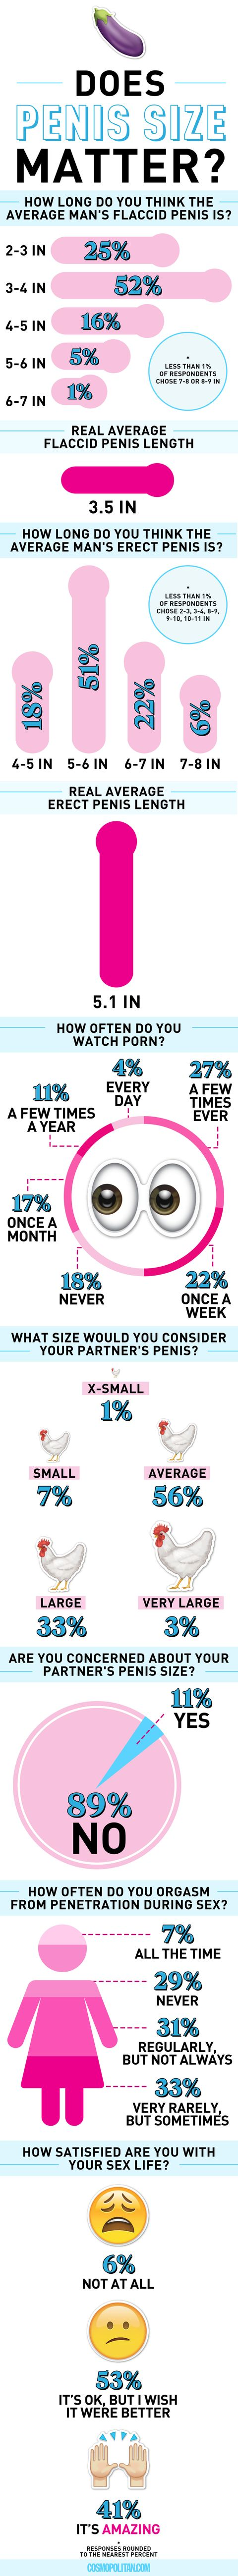 Women s thoughts on variuos penis sizes